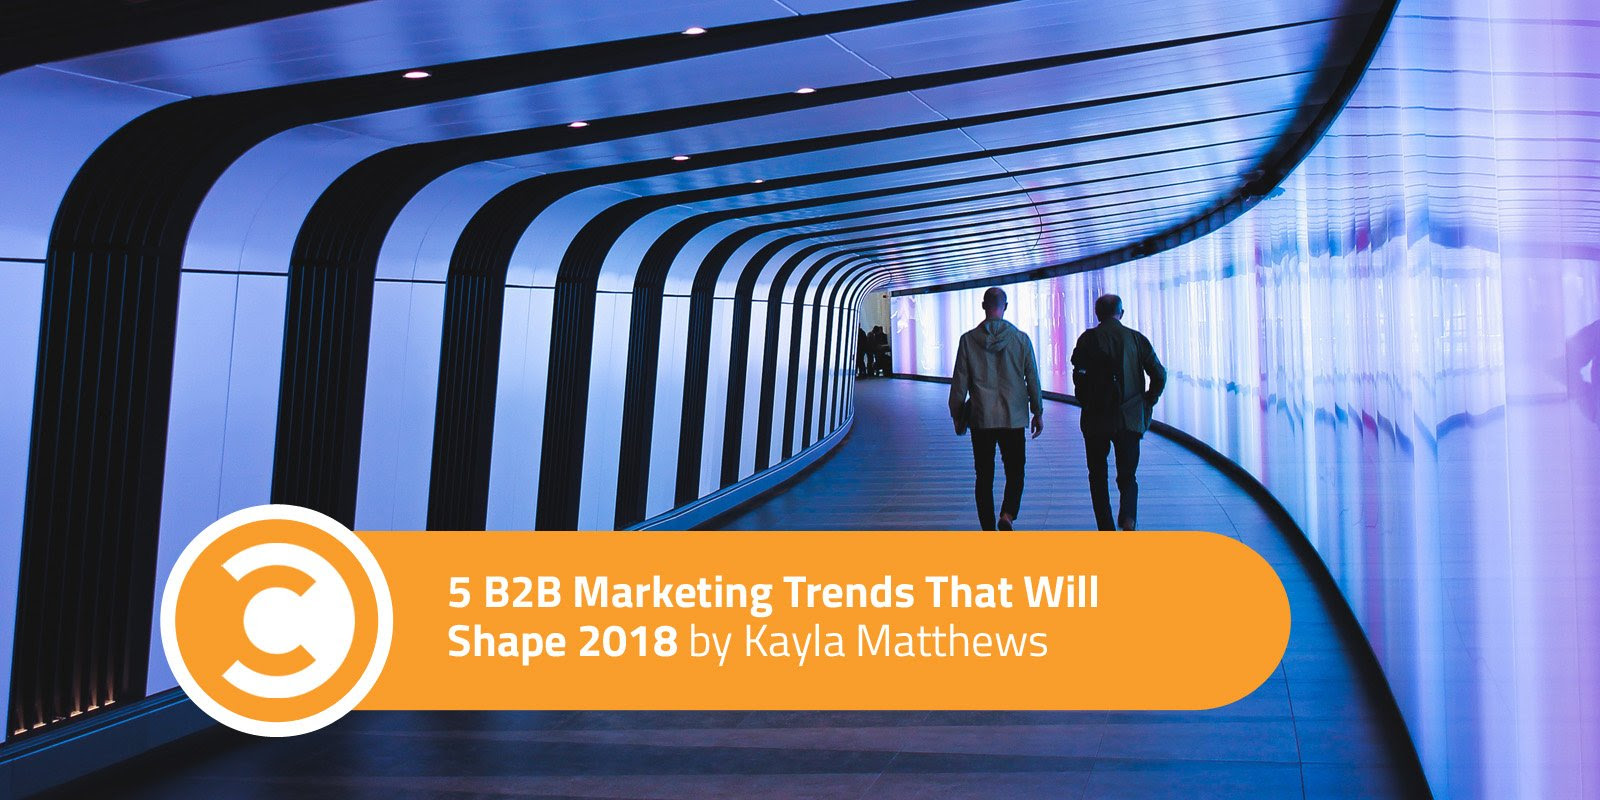 5 B2B Marketing Trends That Will Shape 2018